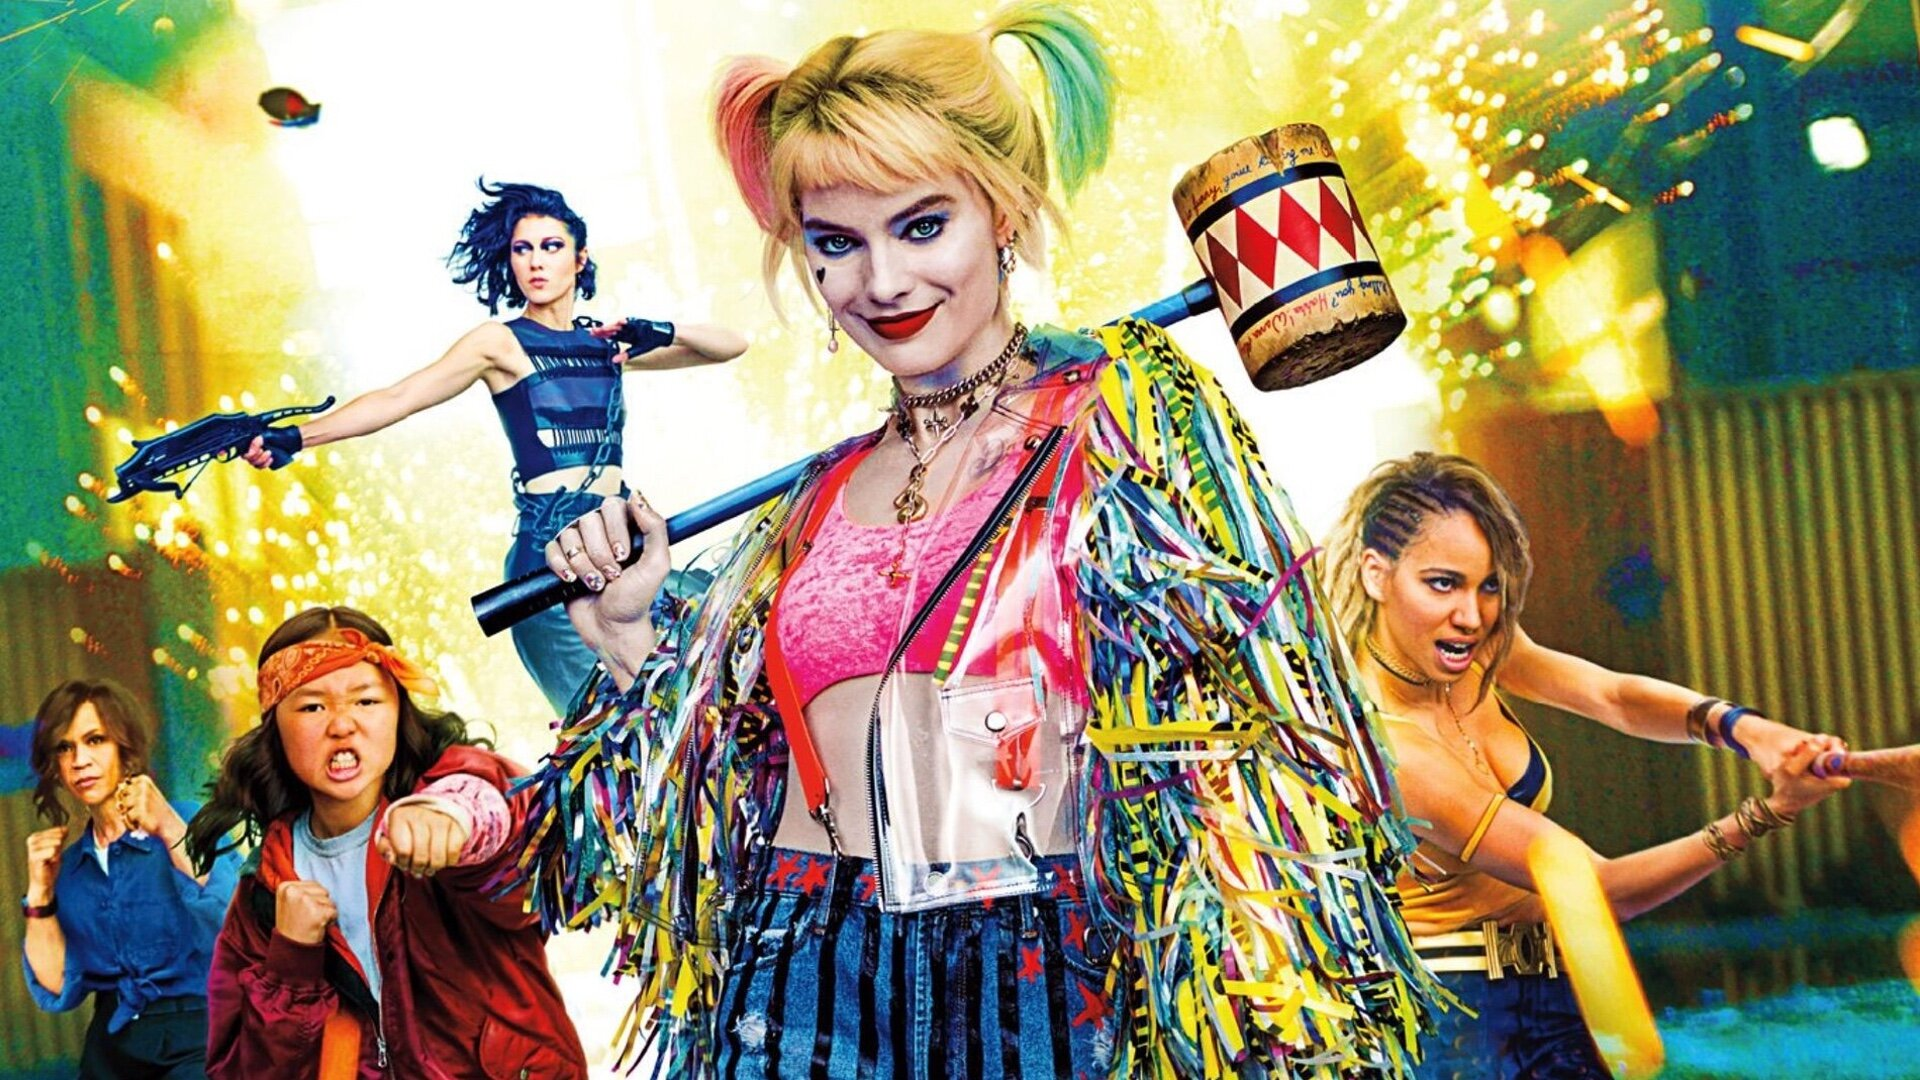 Birds Of Prey Director Cathy Yan Shares Details On The Sizzle Reel She Made That Landed Her The Gig Geektyrant